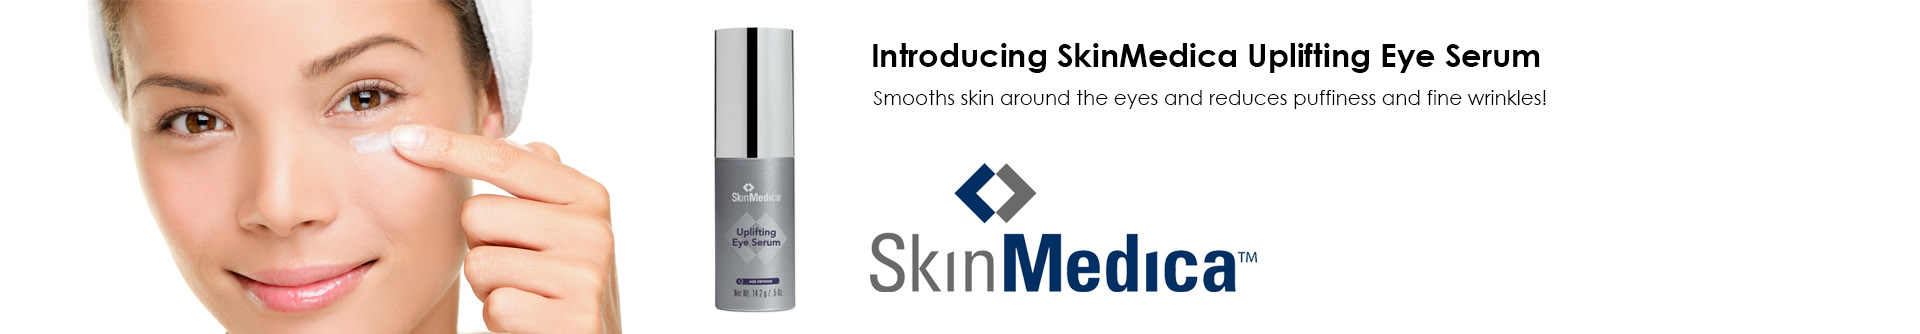 New SkinMedica Product